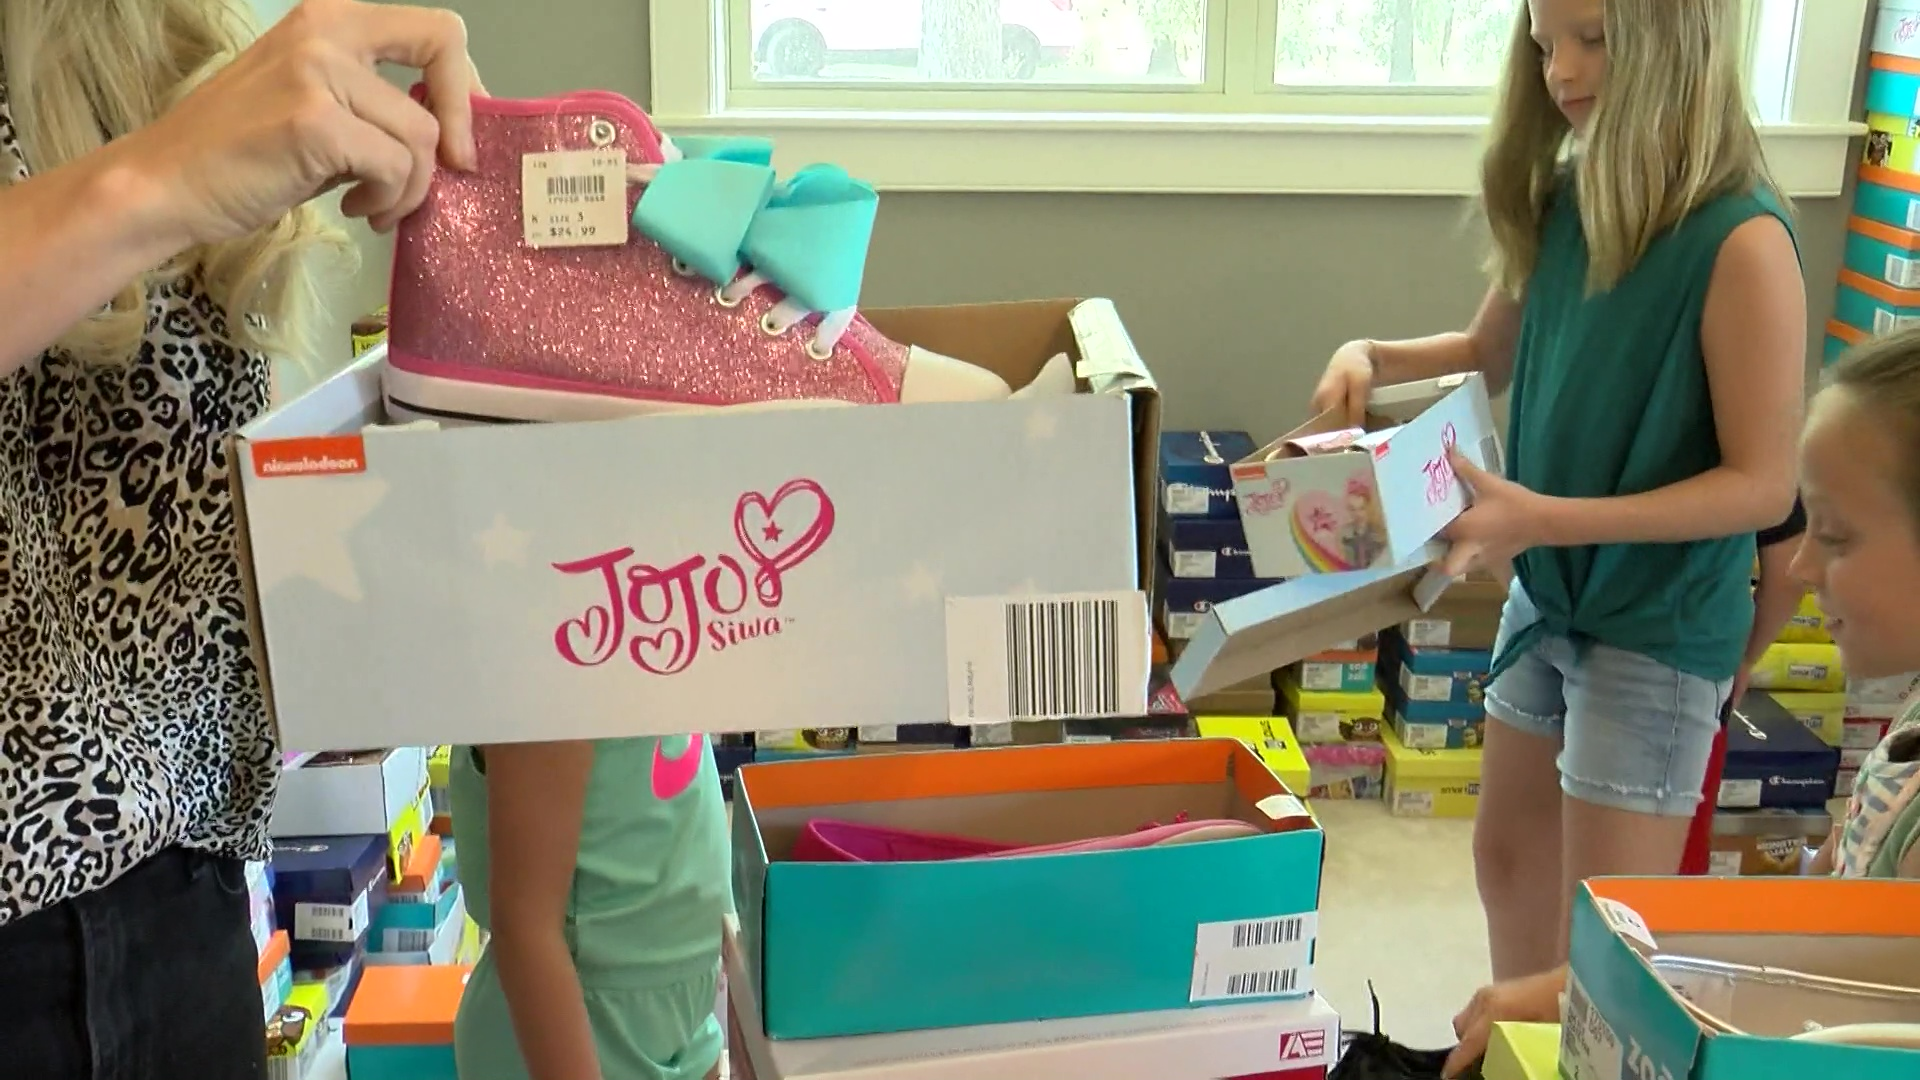 Arkansas family buys out shoe store, plans back-to-school